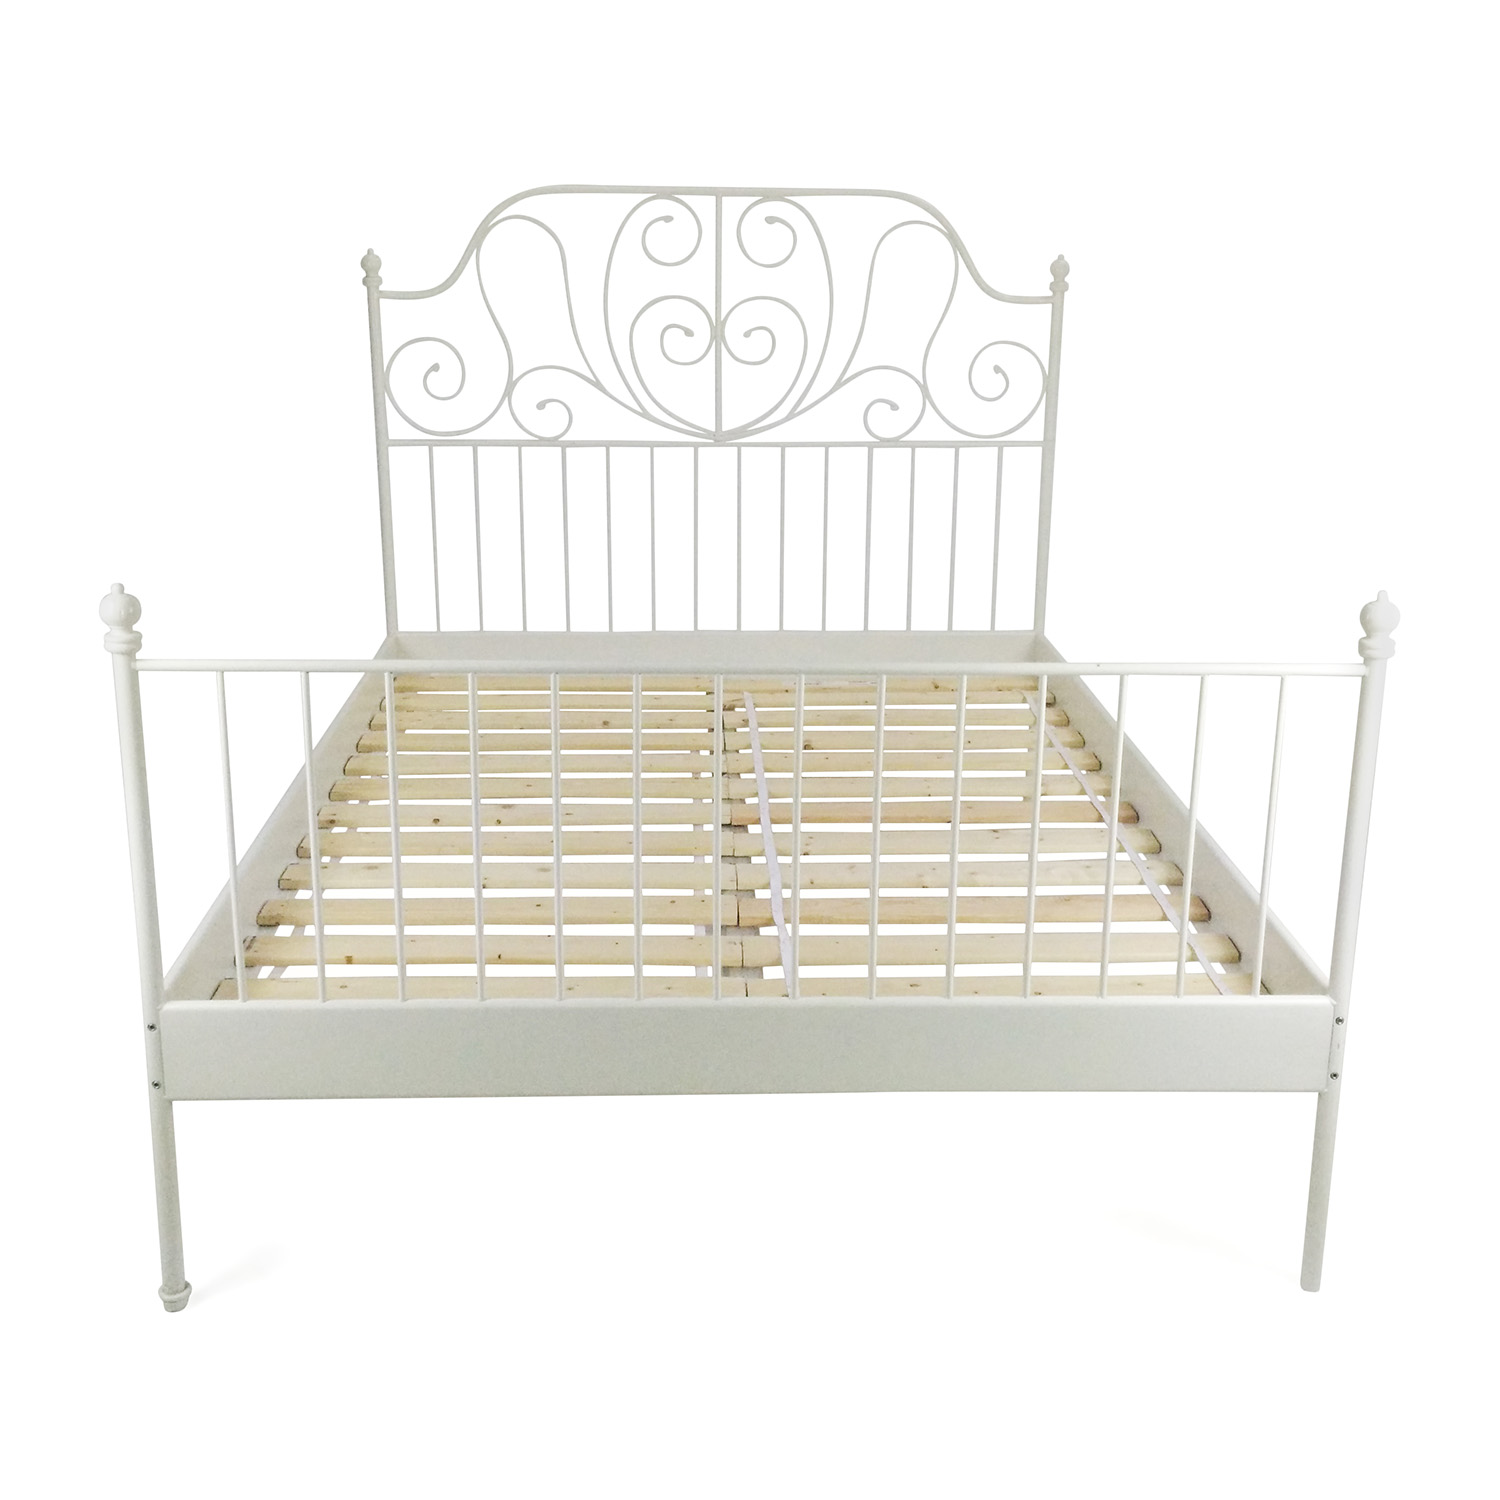 Ikea Metal Bed Frame Home Design And Decor